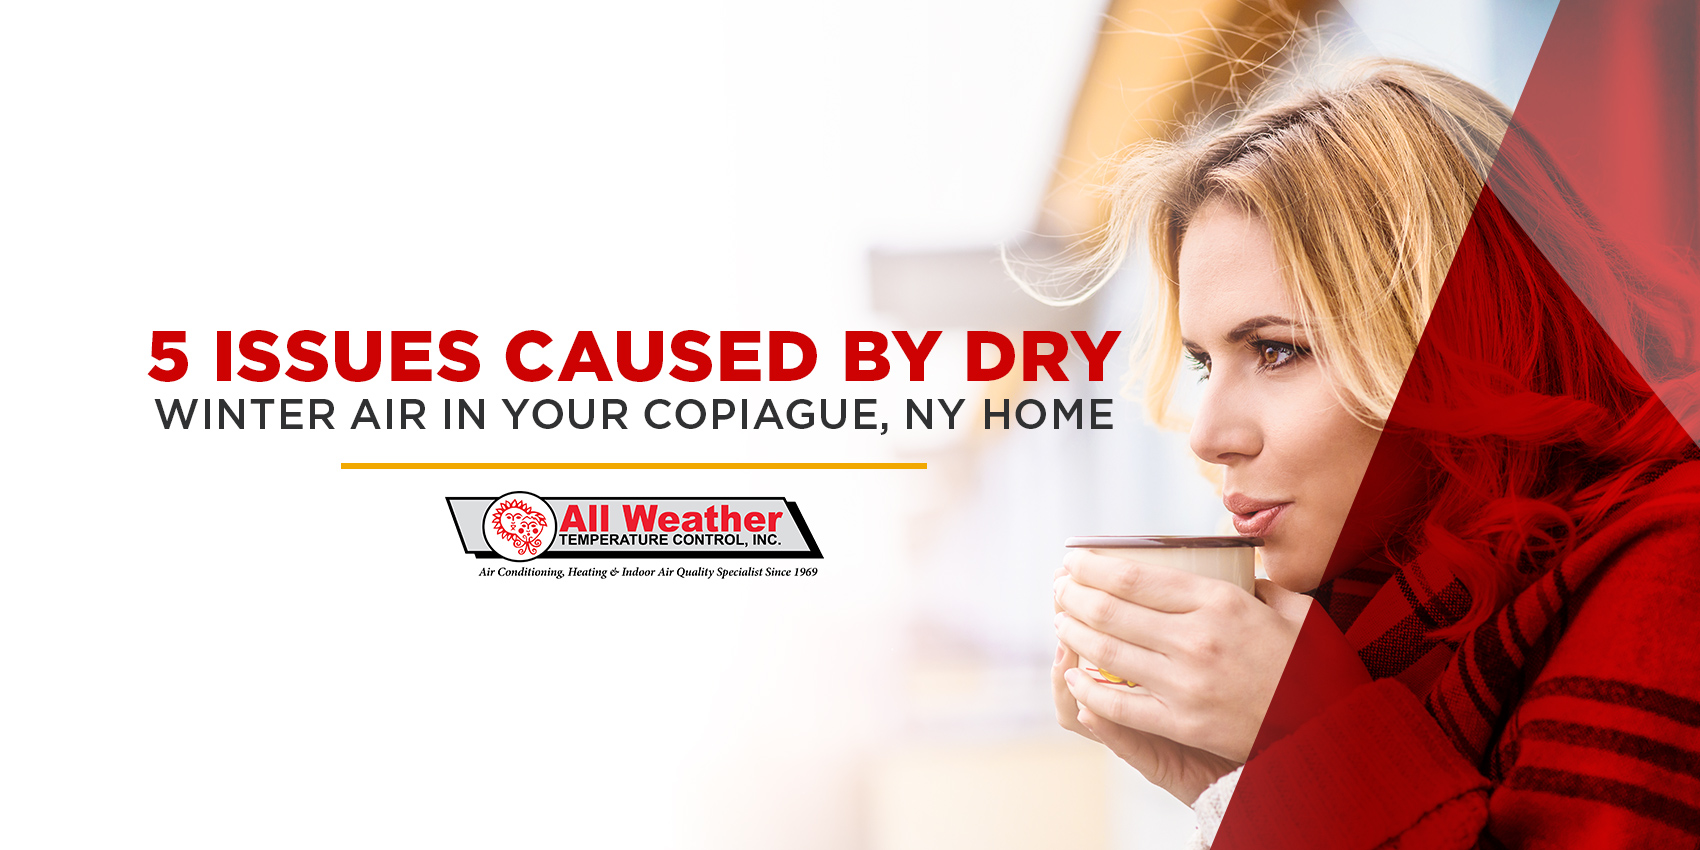 5 Issues Caused by Dry Winter Air in Your Copiague, NY Home